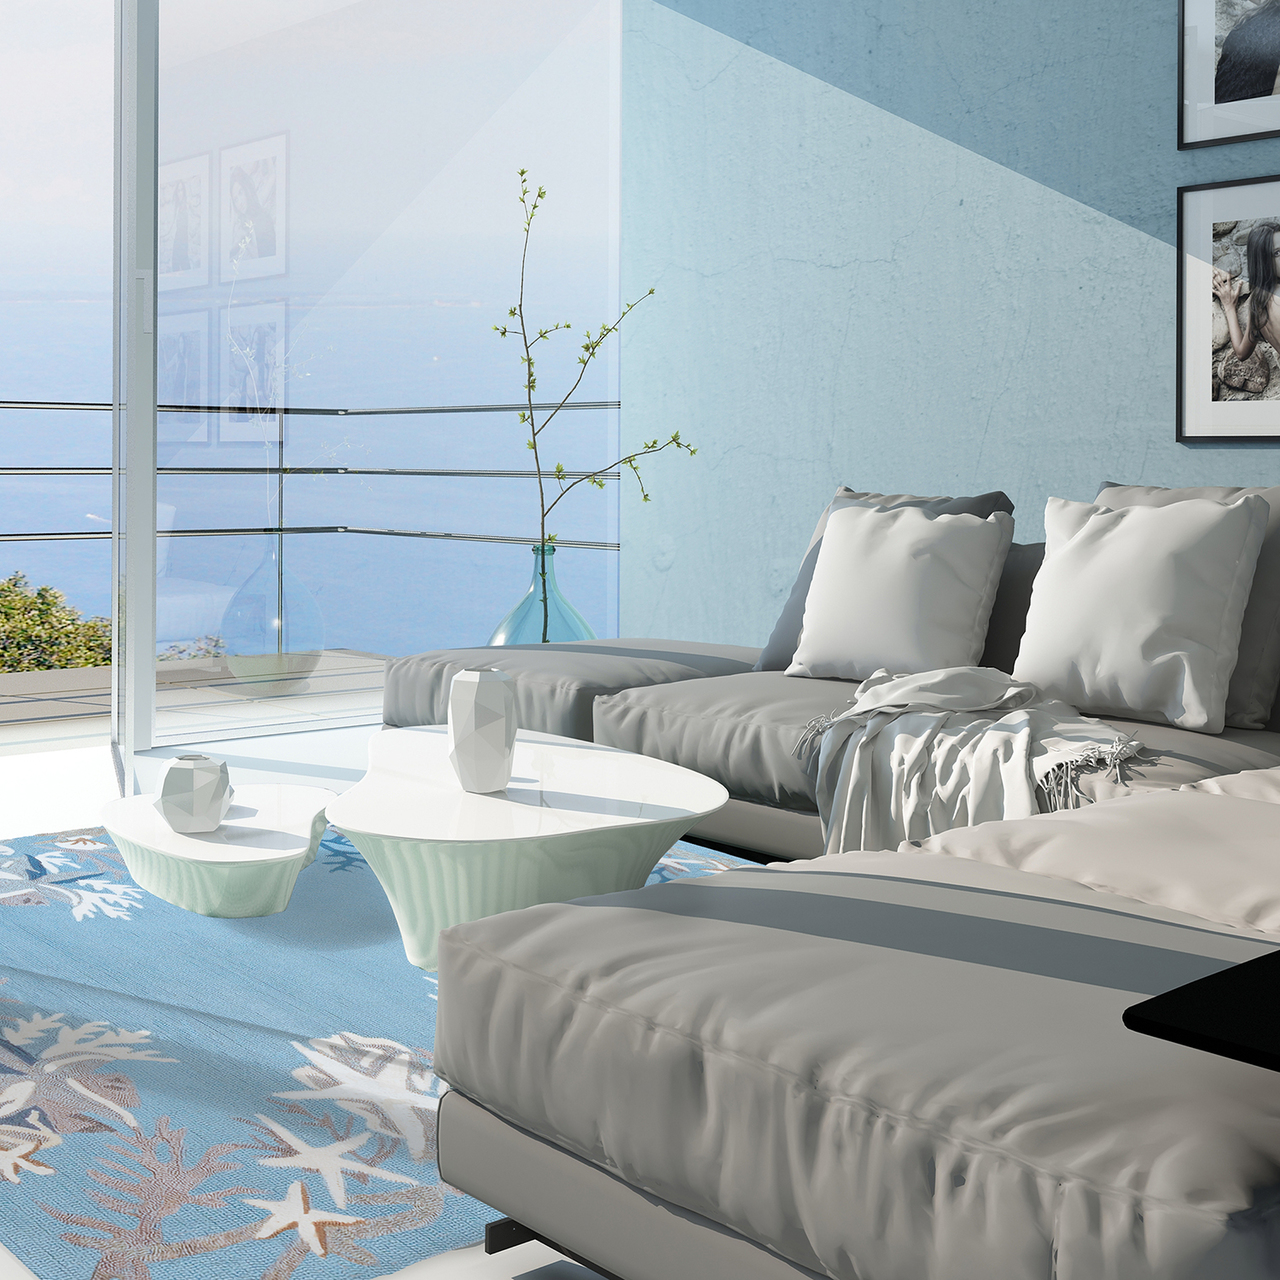 White Coral Reef - Homefires™